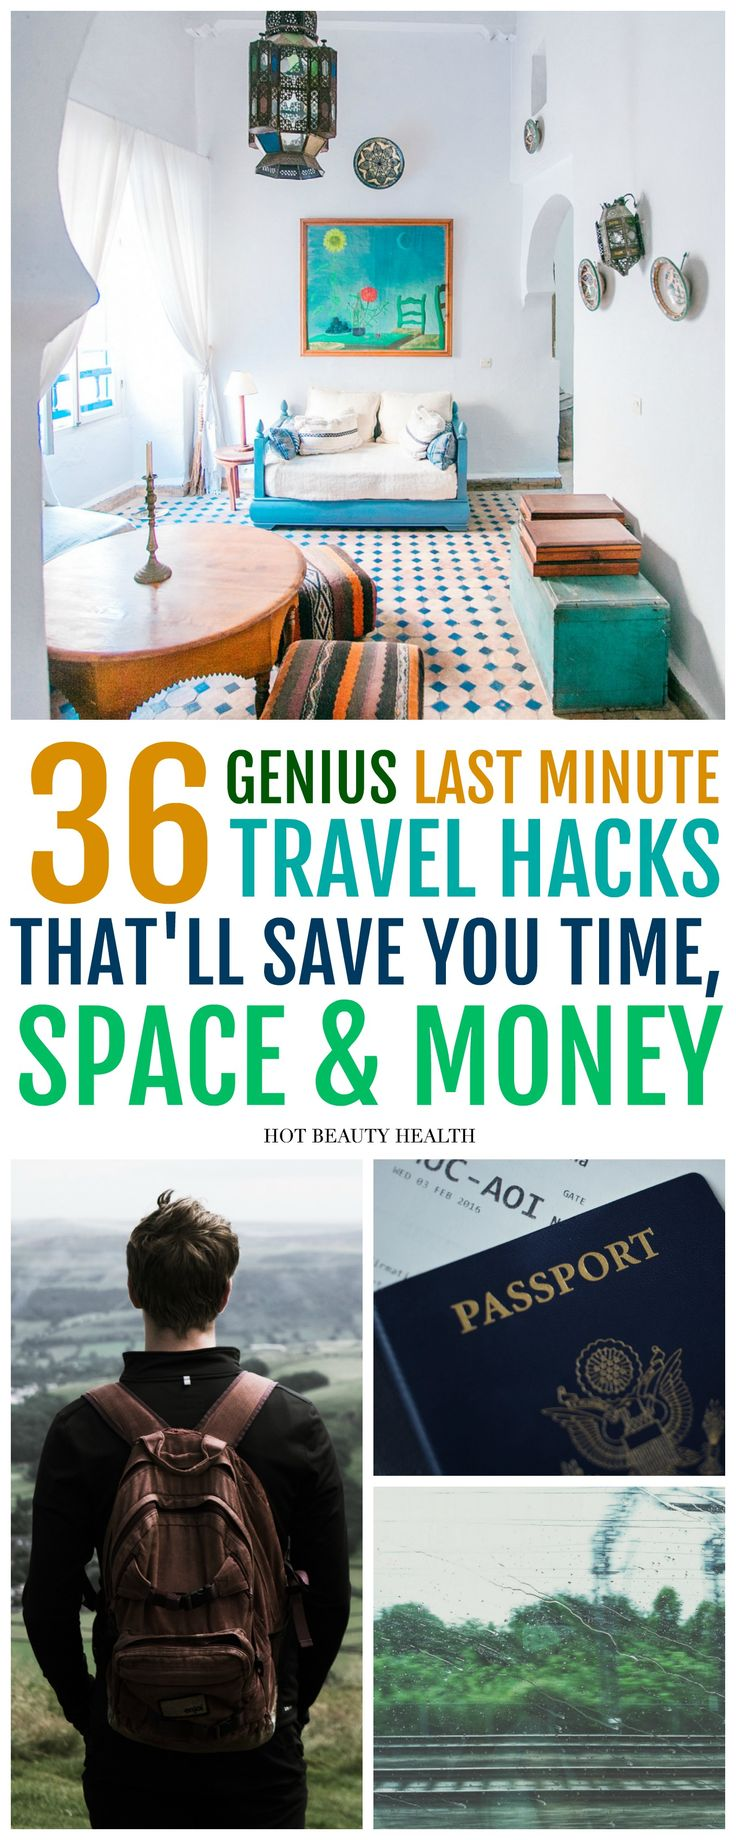 36 last minute travel hacks you haven't thought of yet. Find ways to get cheap deals on airfare, hotels, weekend getaways, vacations, road trips, cool destinations and more! Follow these tips to help you better prepare and save money on your travels.